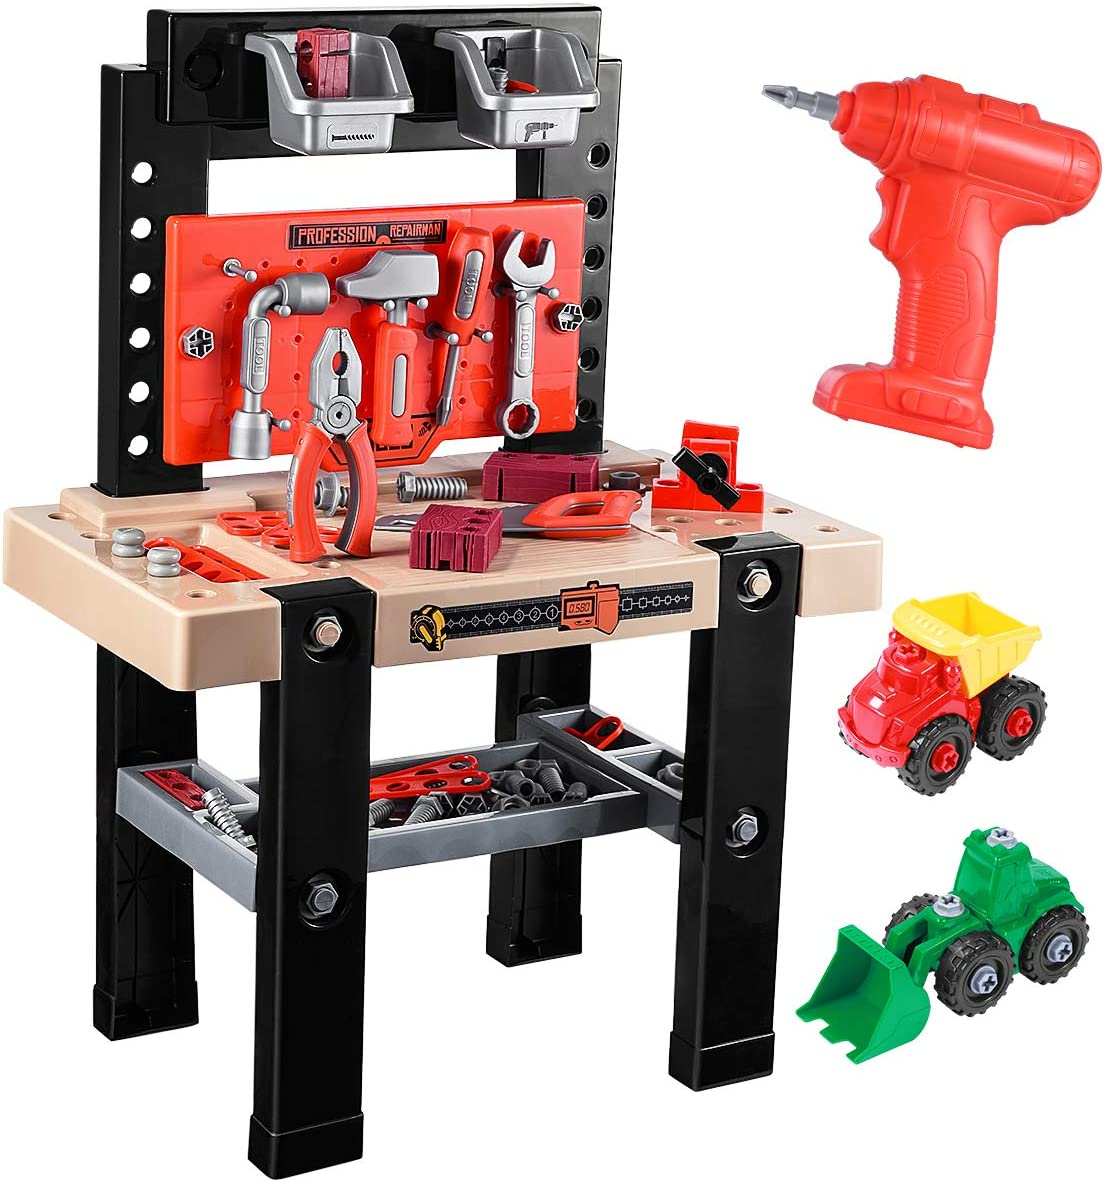 Years Boys Girls to Role Play and Simulated Repair Work GeyiieTOYS Kids Tool Bench Set 54Pcs Tool Toy Kit 2-in-1 Childrens Workbench Playset with Electric Drill Fold Up Design Toy Tool Box for 3